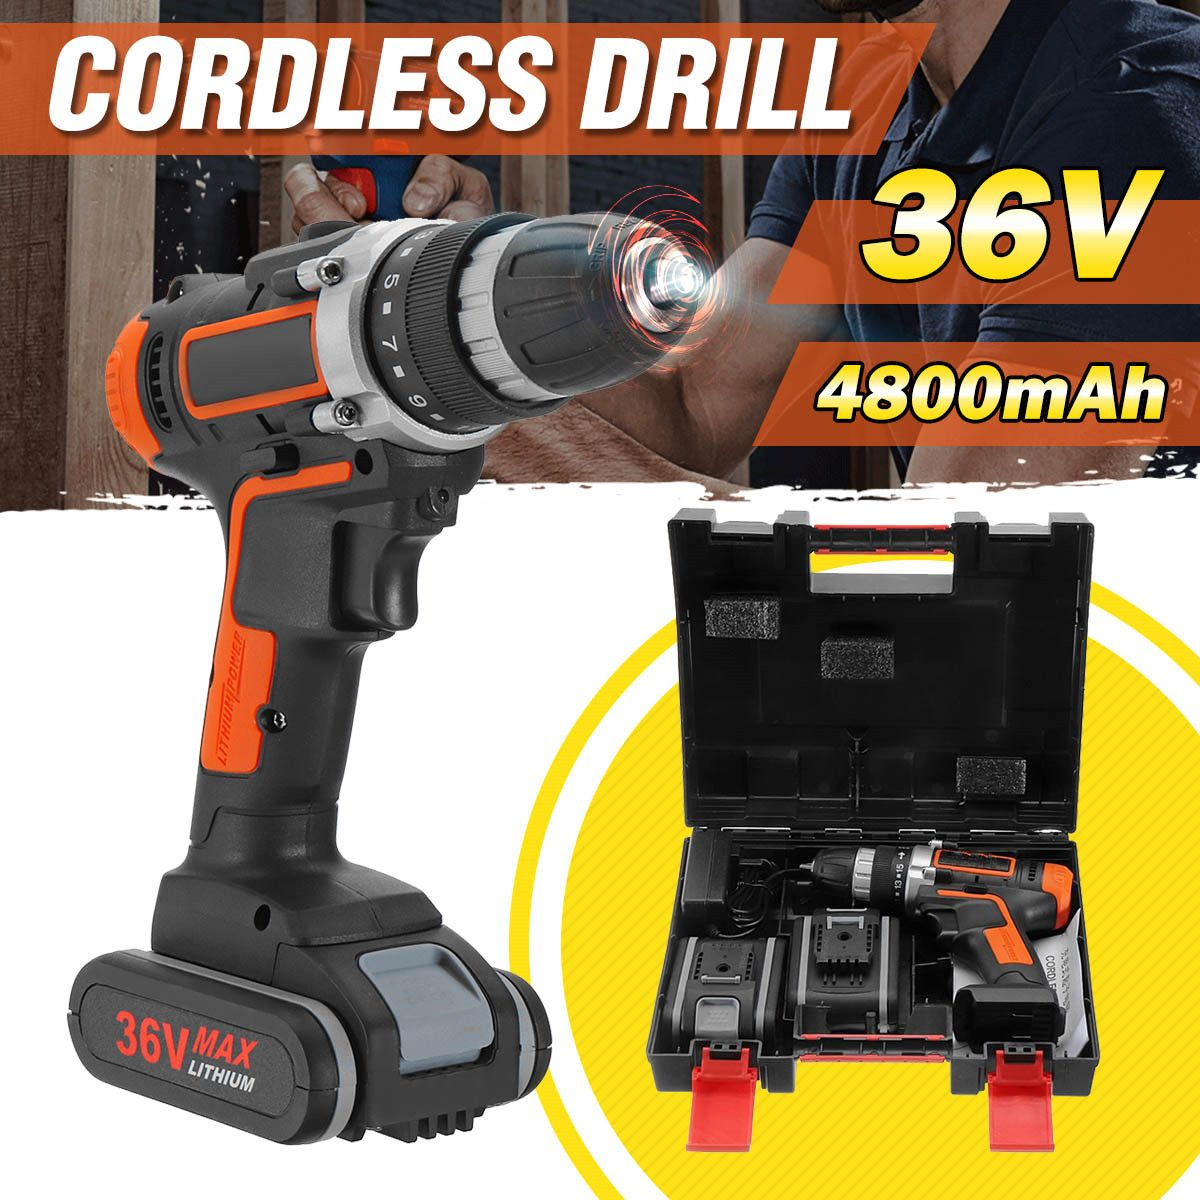 Doersupp 36V Electric Screwdriver Lithium Battery Rechargeable Parafusadeira Furadeira Multi-function Cordless Drill Power Tools